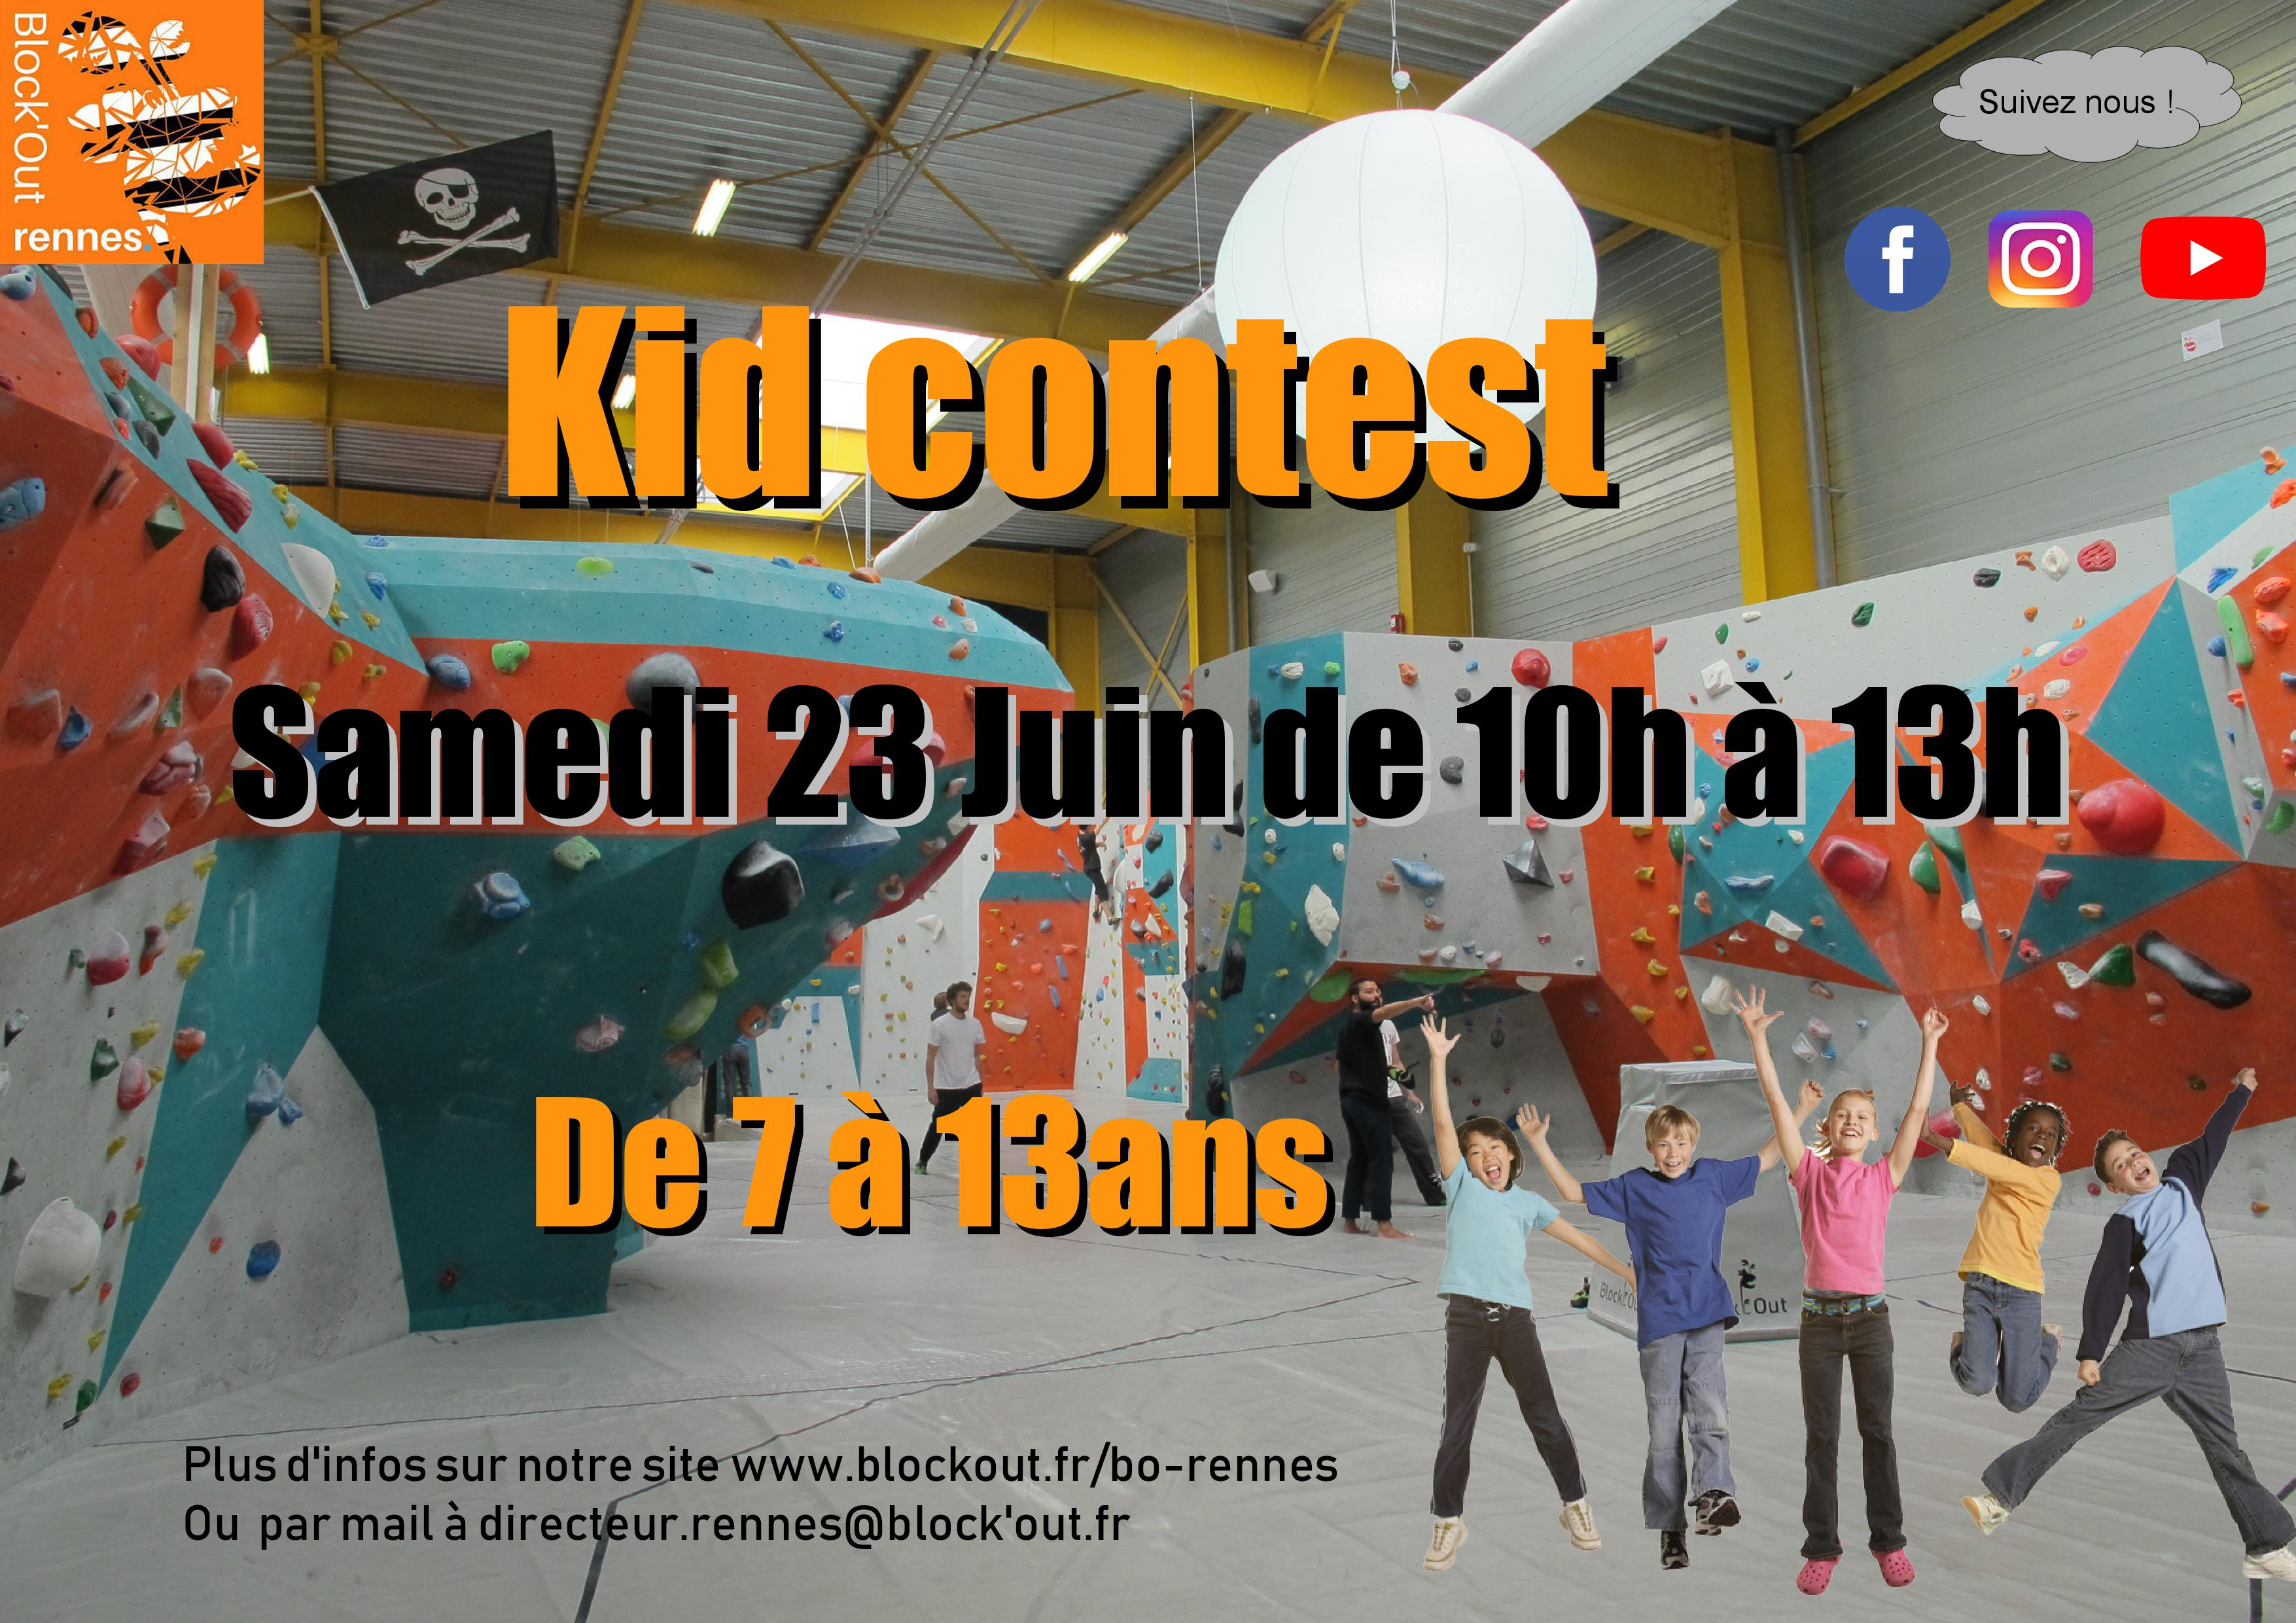 Kid contest - Block'Out Rennes